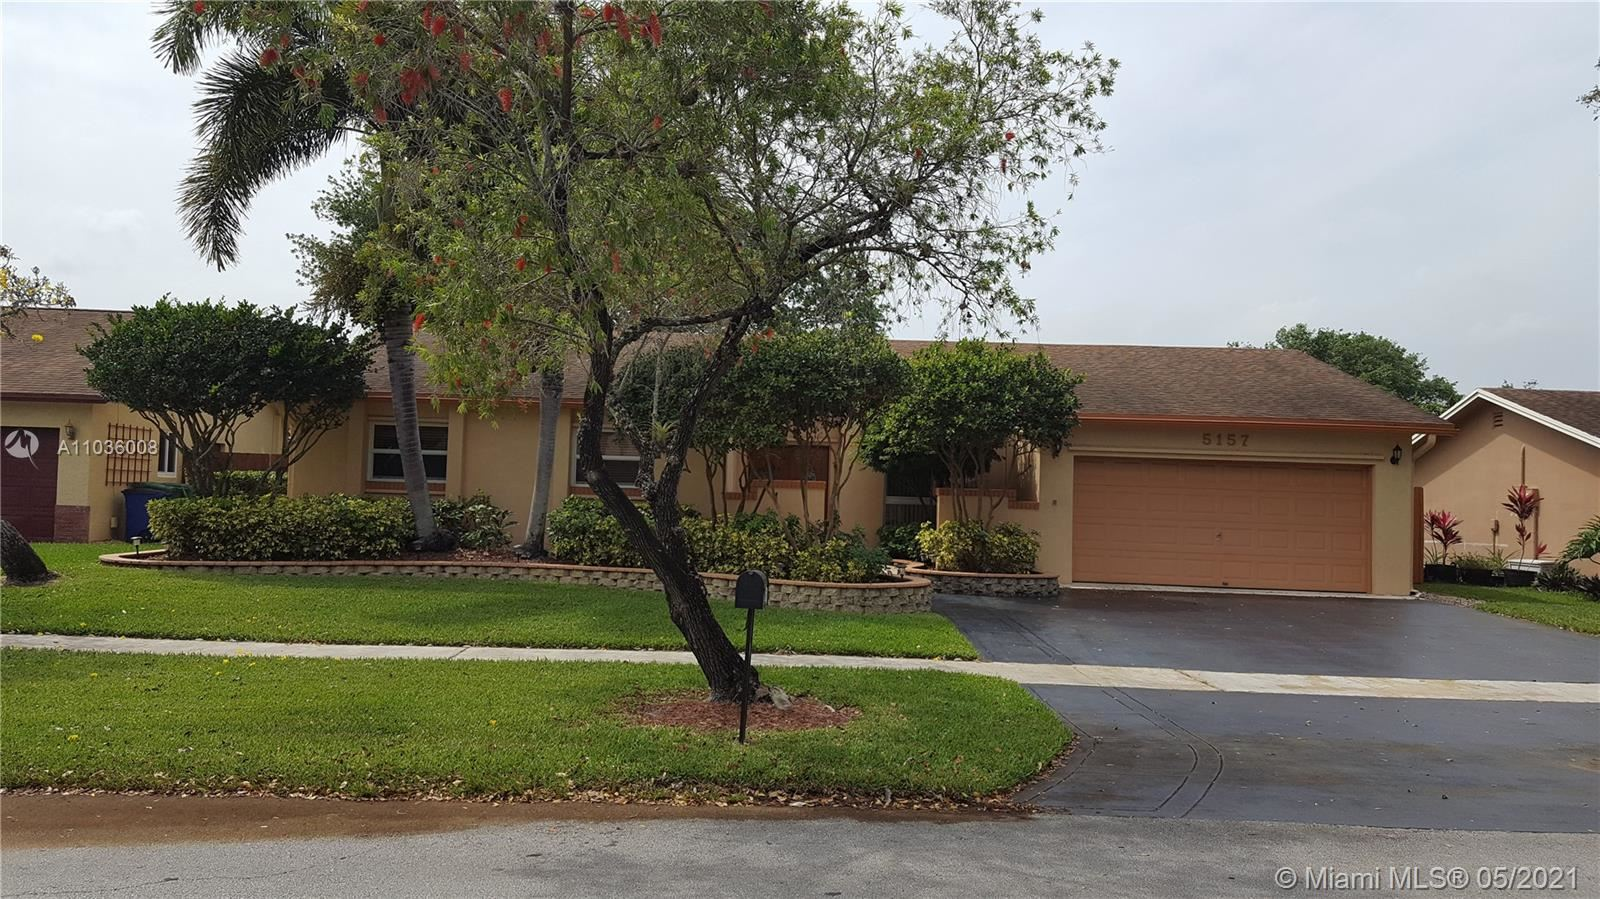 Photo of 5157 SW 87th Ave, Cooper City, FL 33328 (MLS # A11036008)